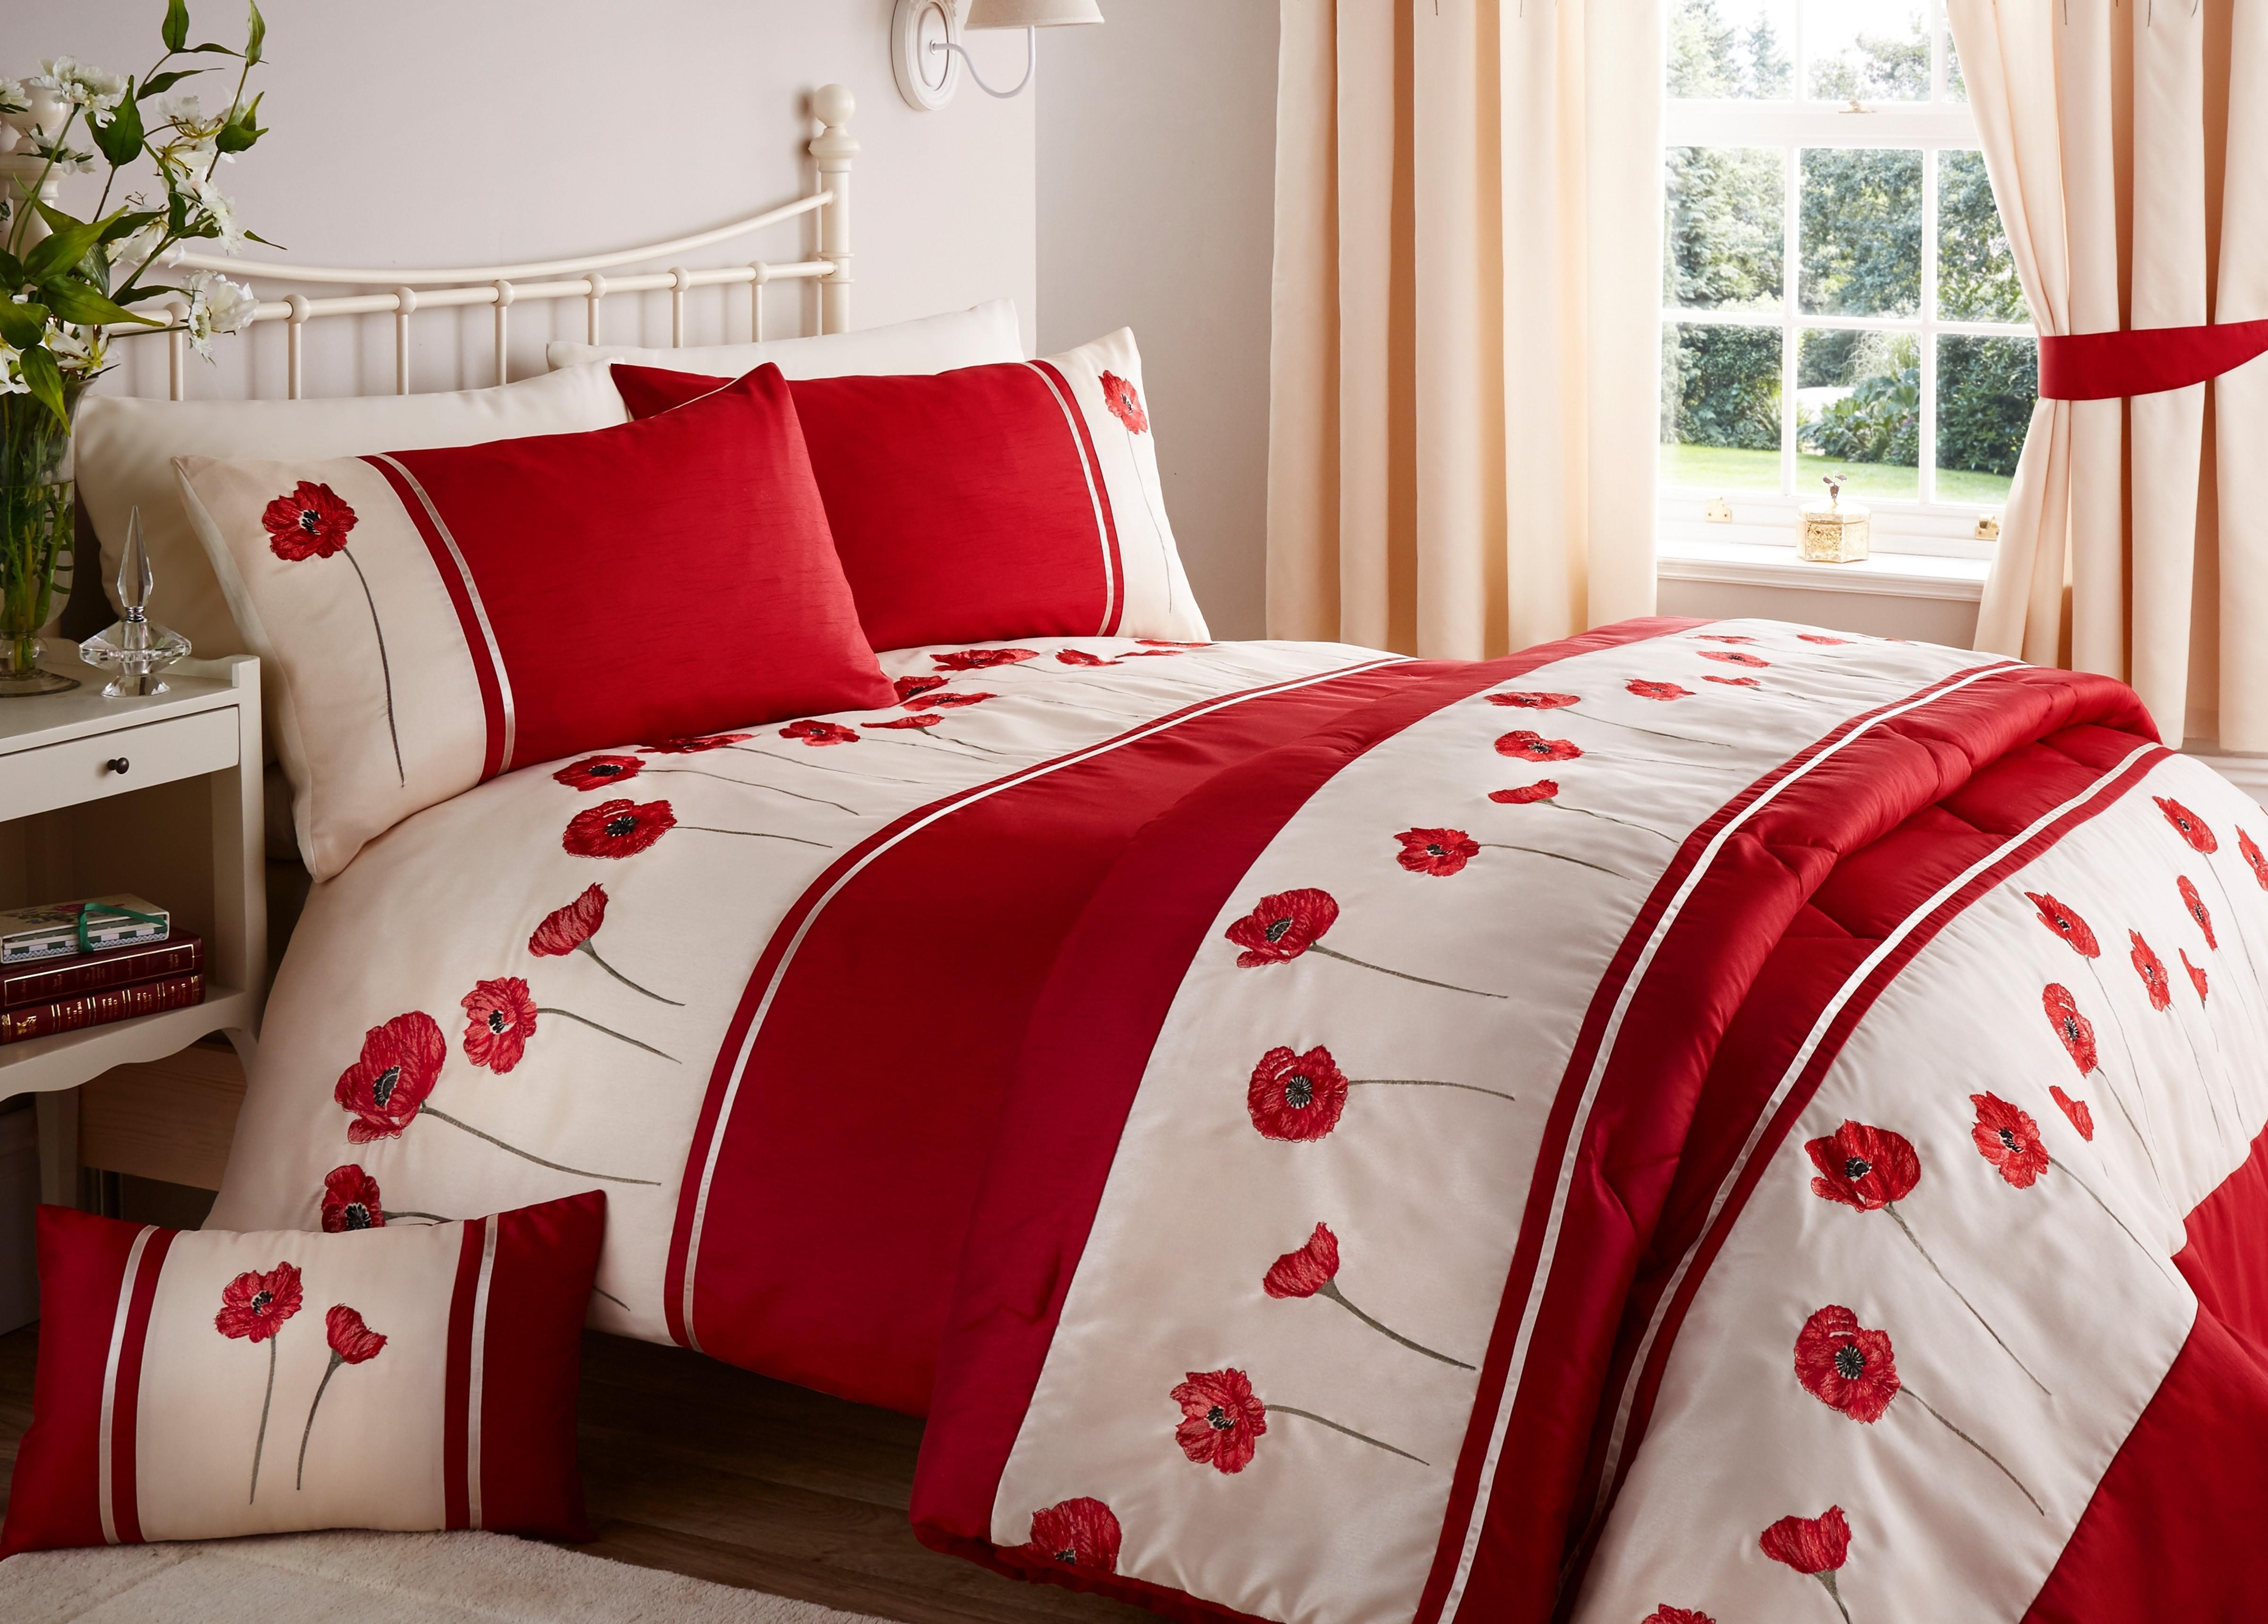 Embroidered Poppy Bedding Collection Red Ponden Home